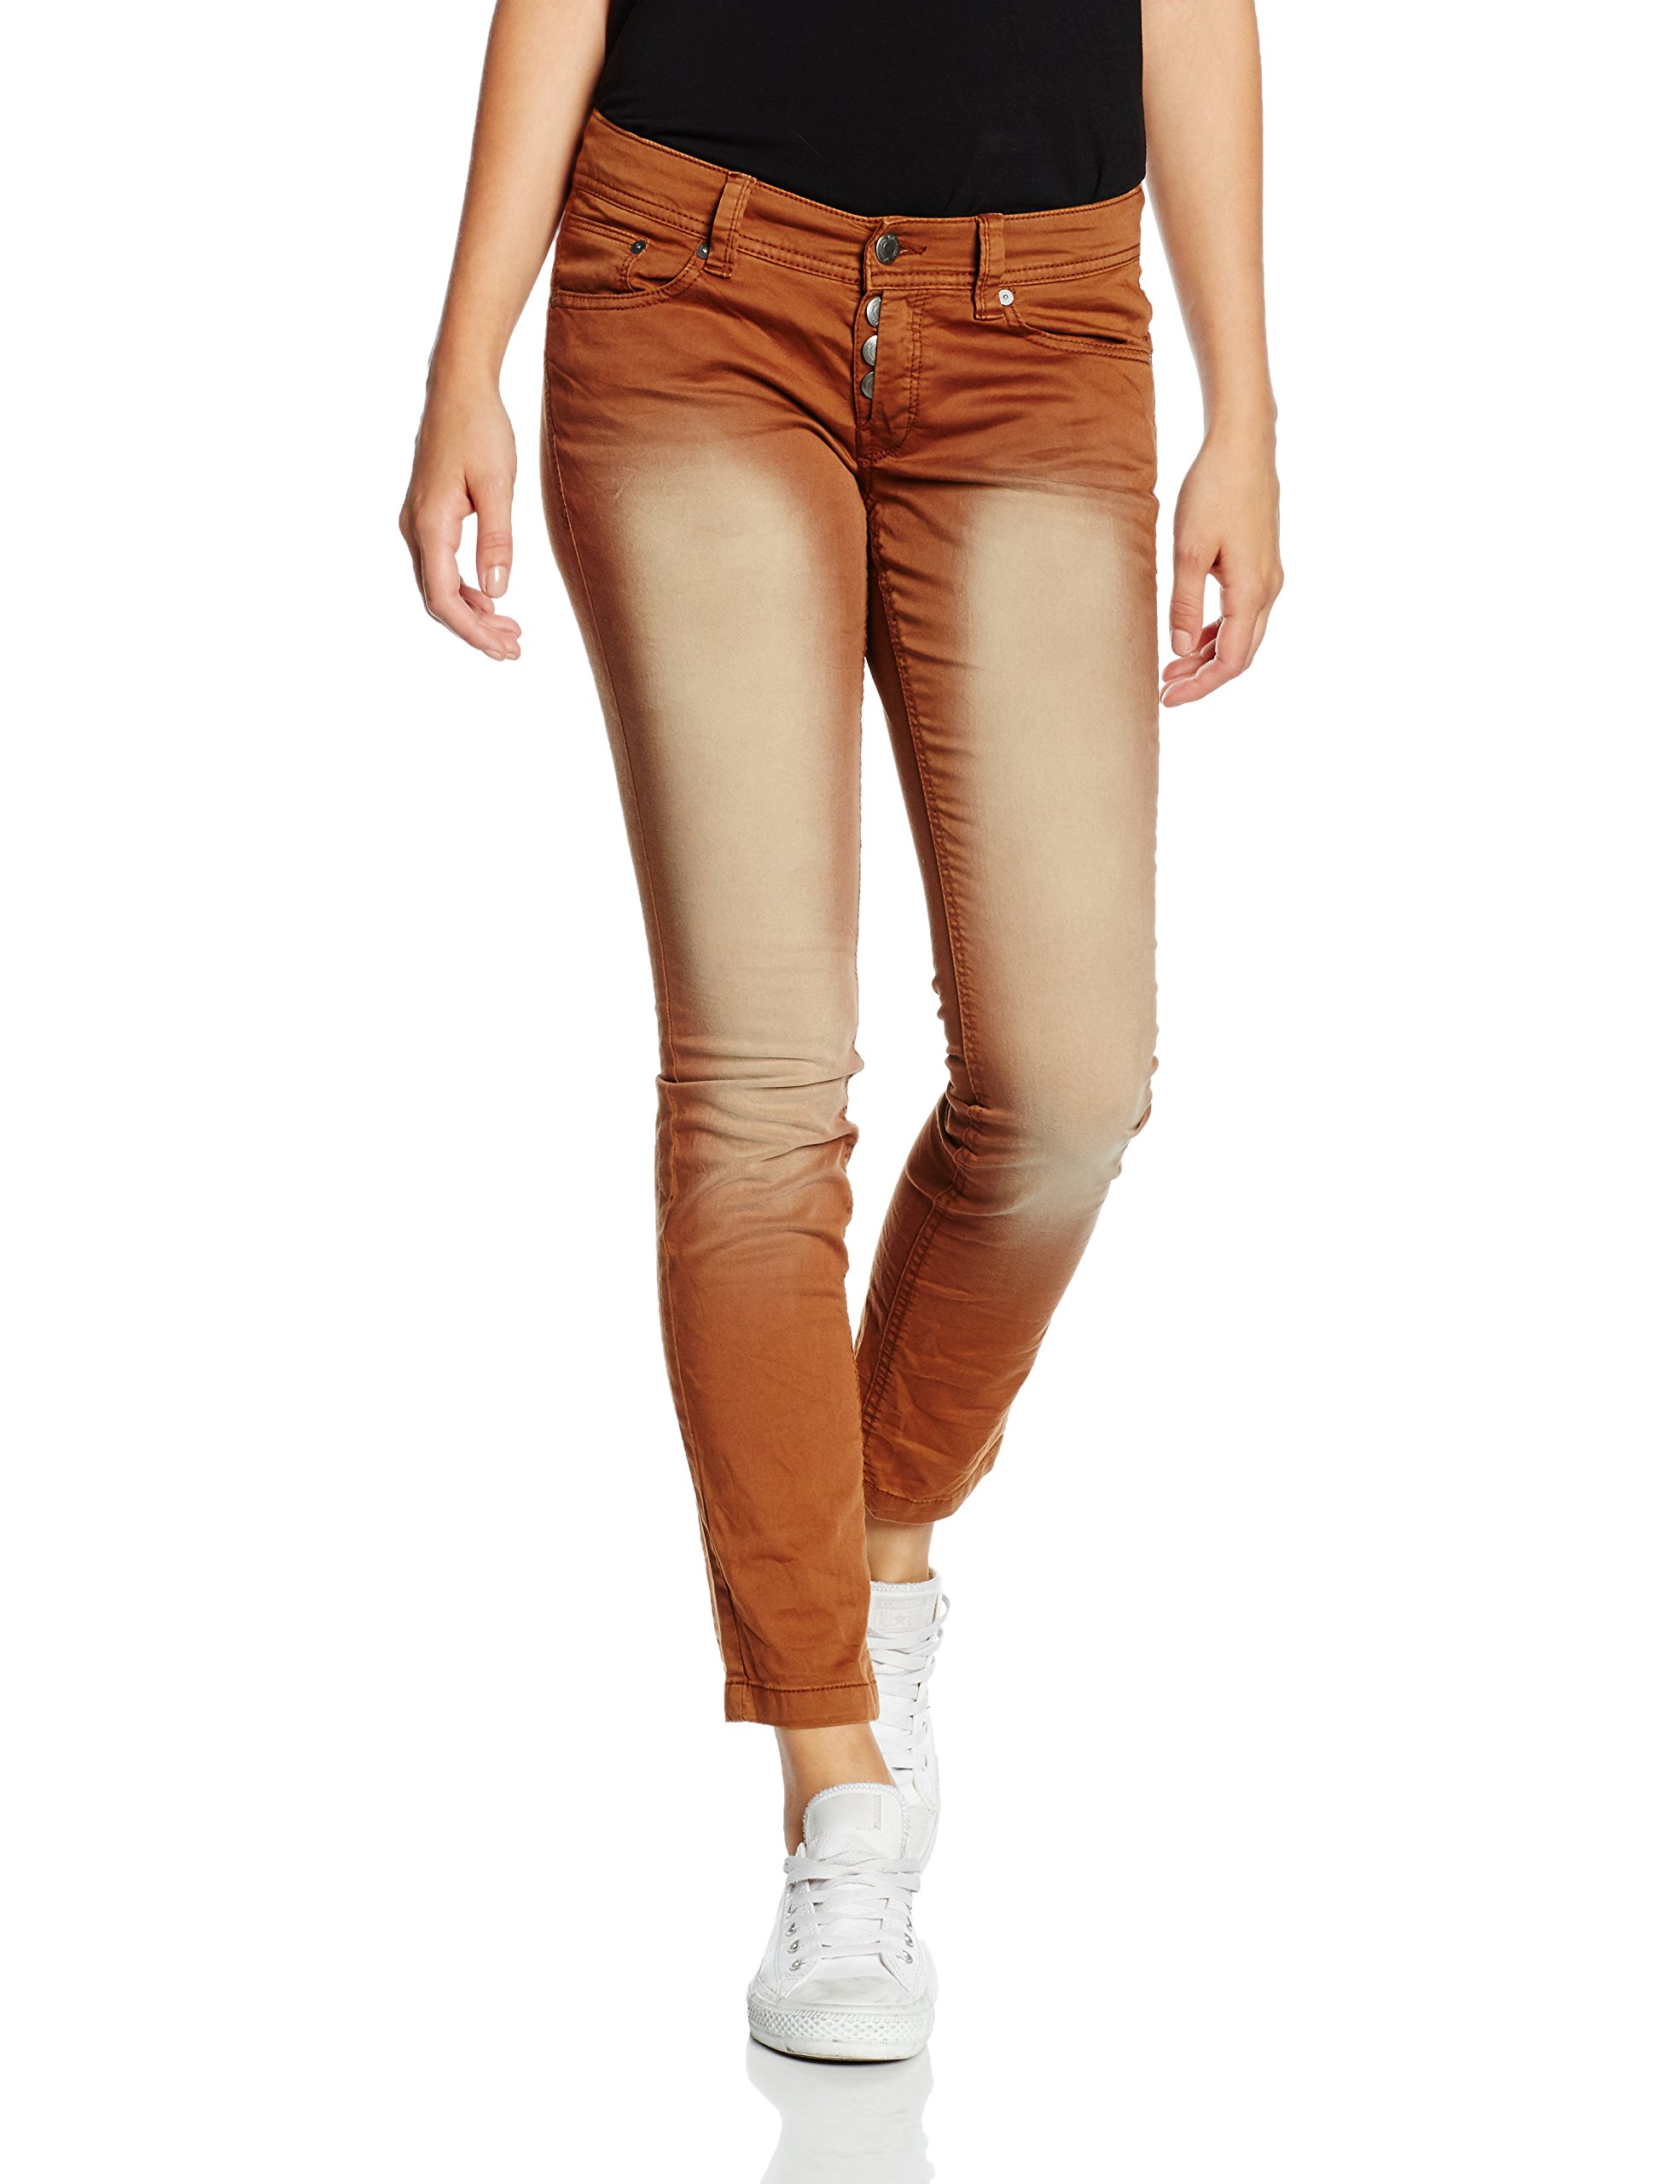 Fabricant40Femme 899 32 taille 0408 L oliver 45 Designed ByS PantalonMarronbrownW Q s 73 6byf7g